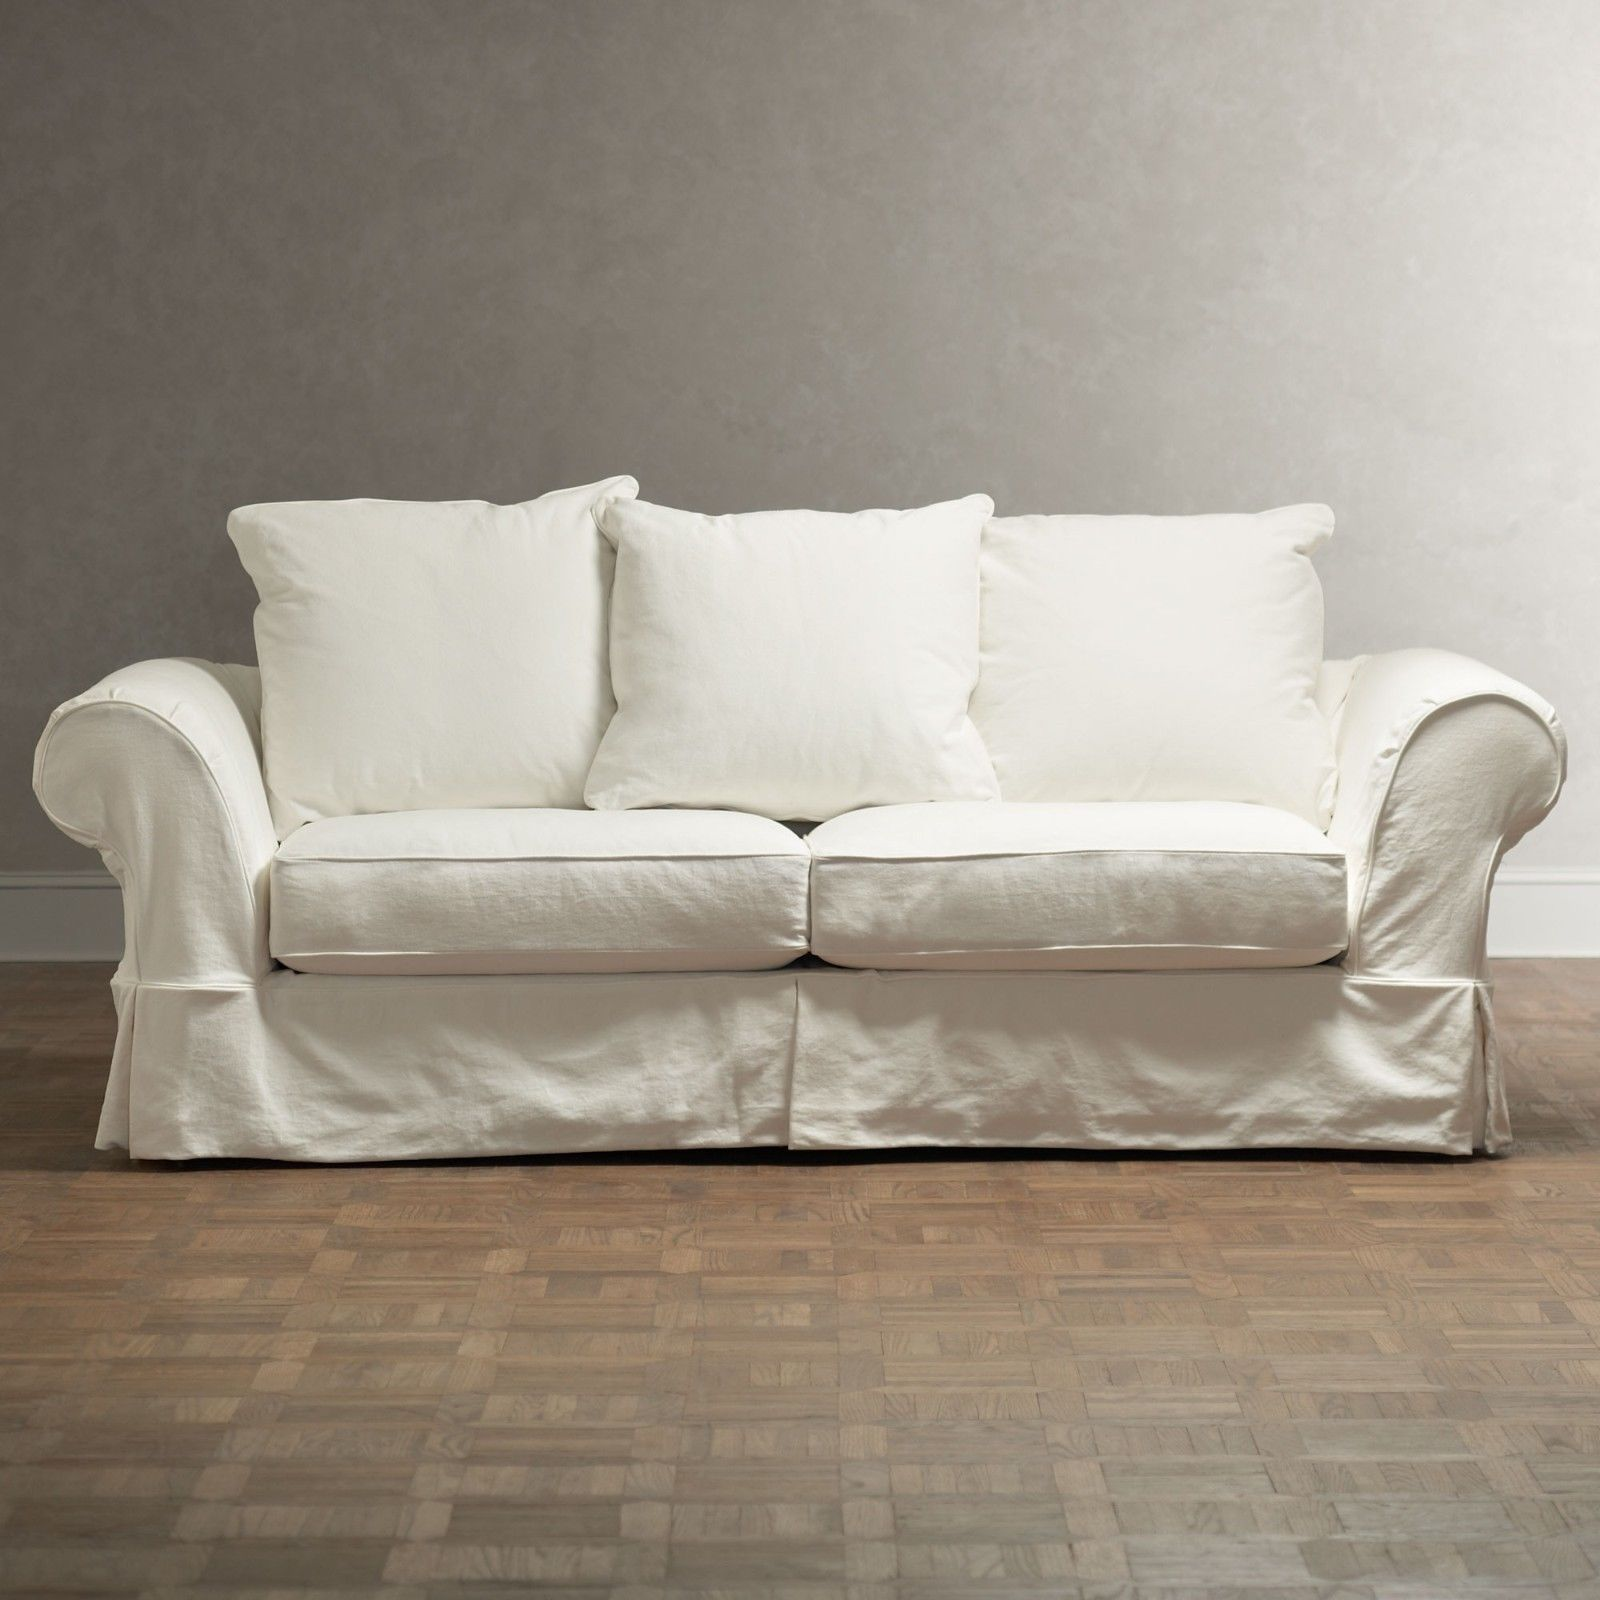 Chic Shabby French Style White Twill Sofa 64 W X 38 D X 35 H In